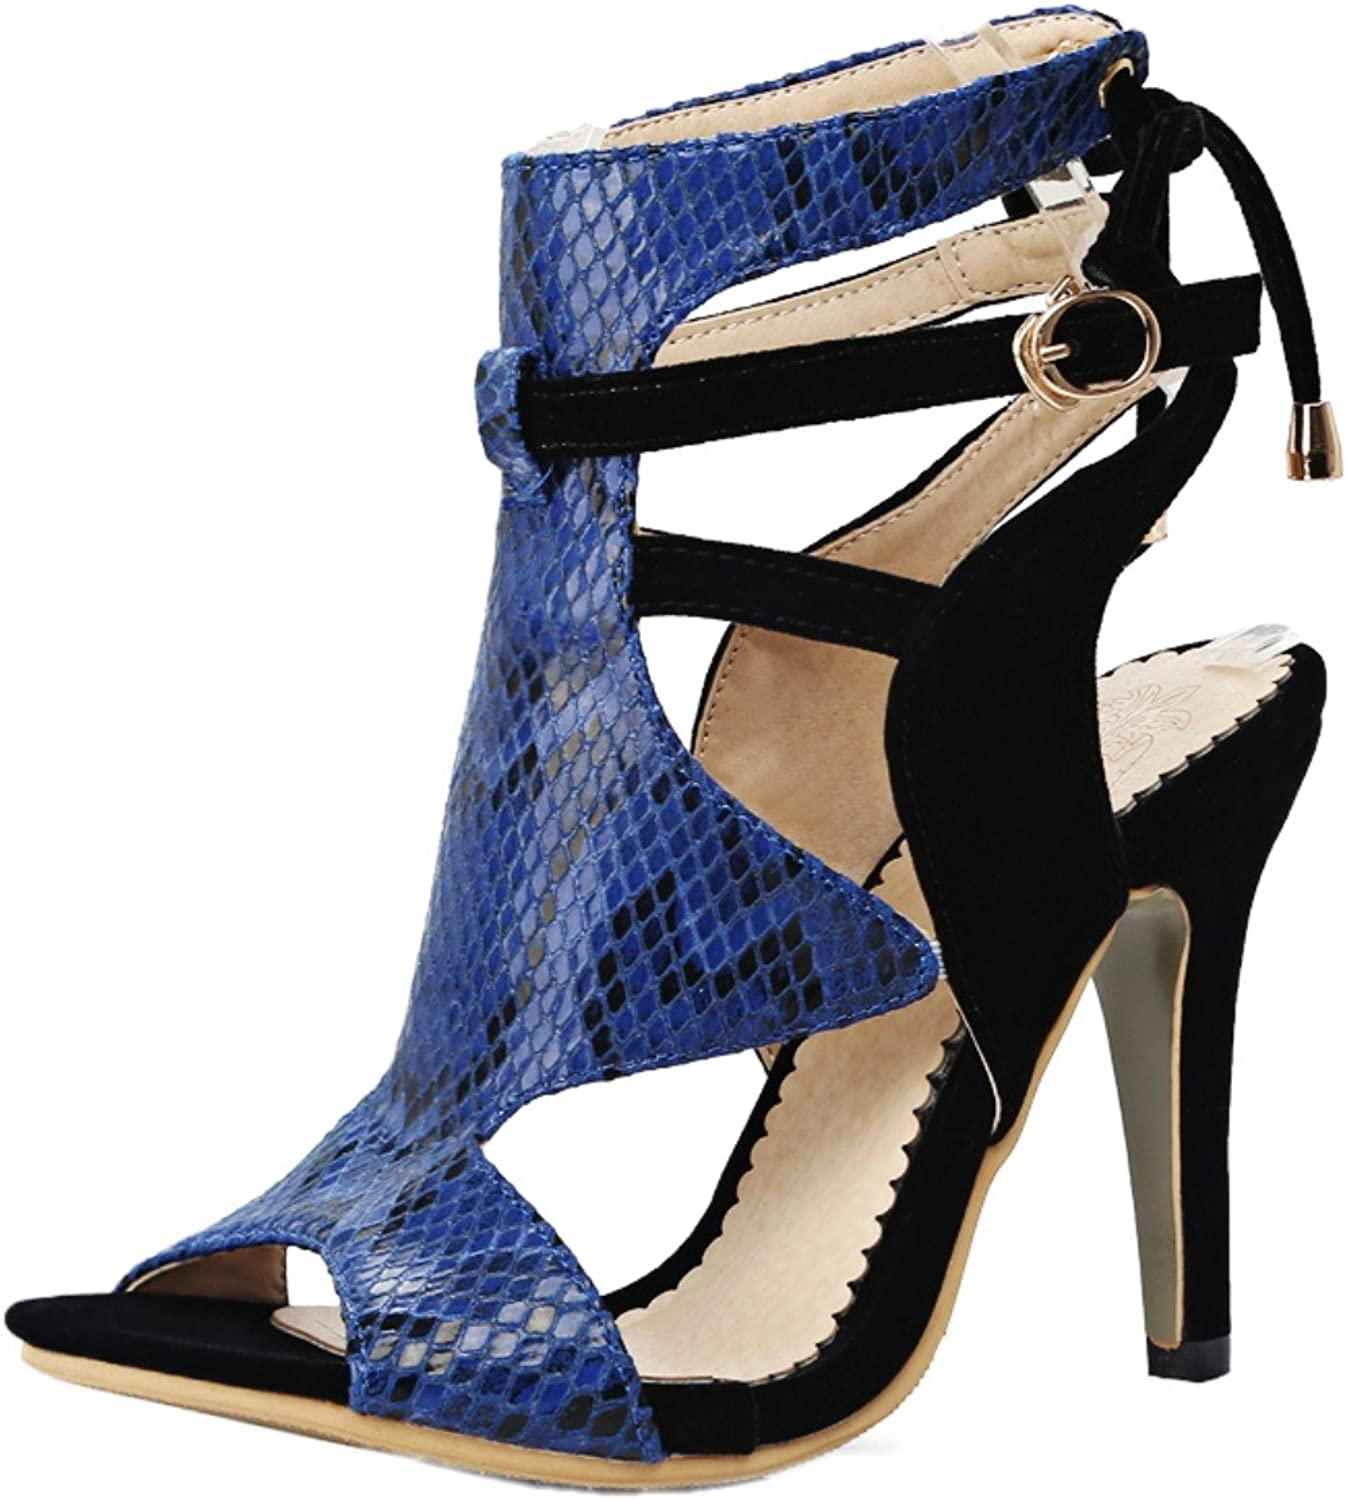 Rongzhi Womens High Heels Pumps Heeled Sandals Stilettos Ankle Strap Buckle shoes Open Toe Dress Party Red